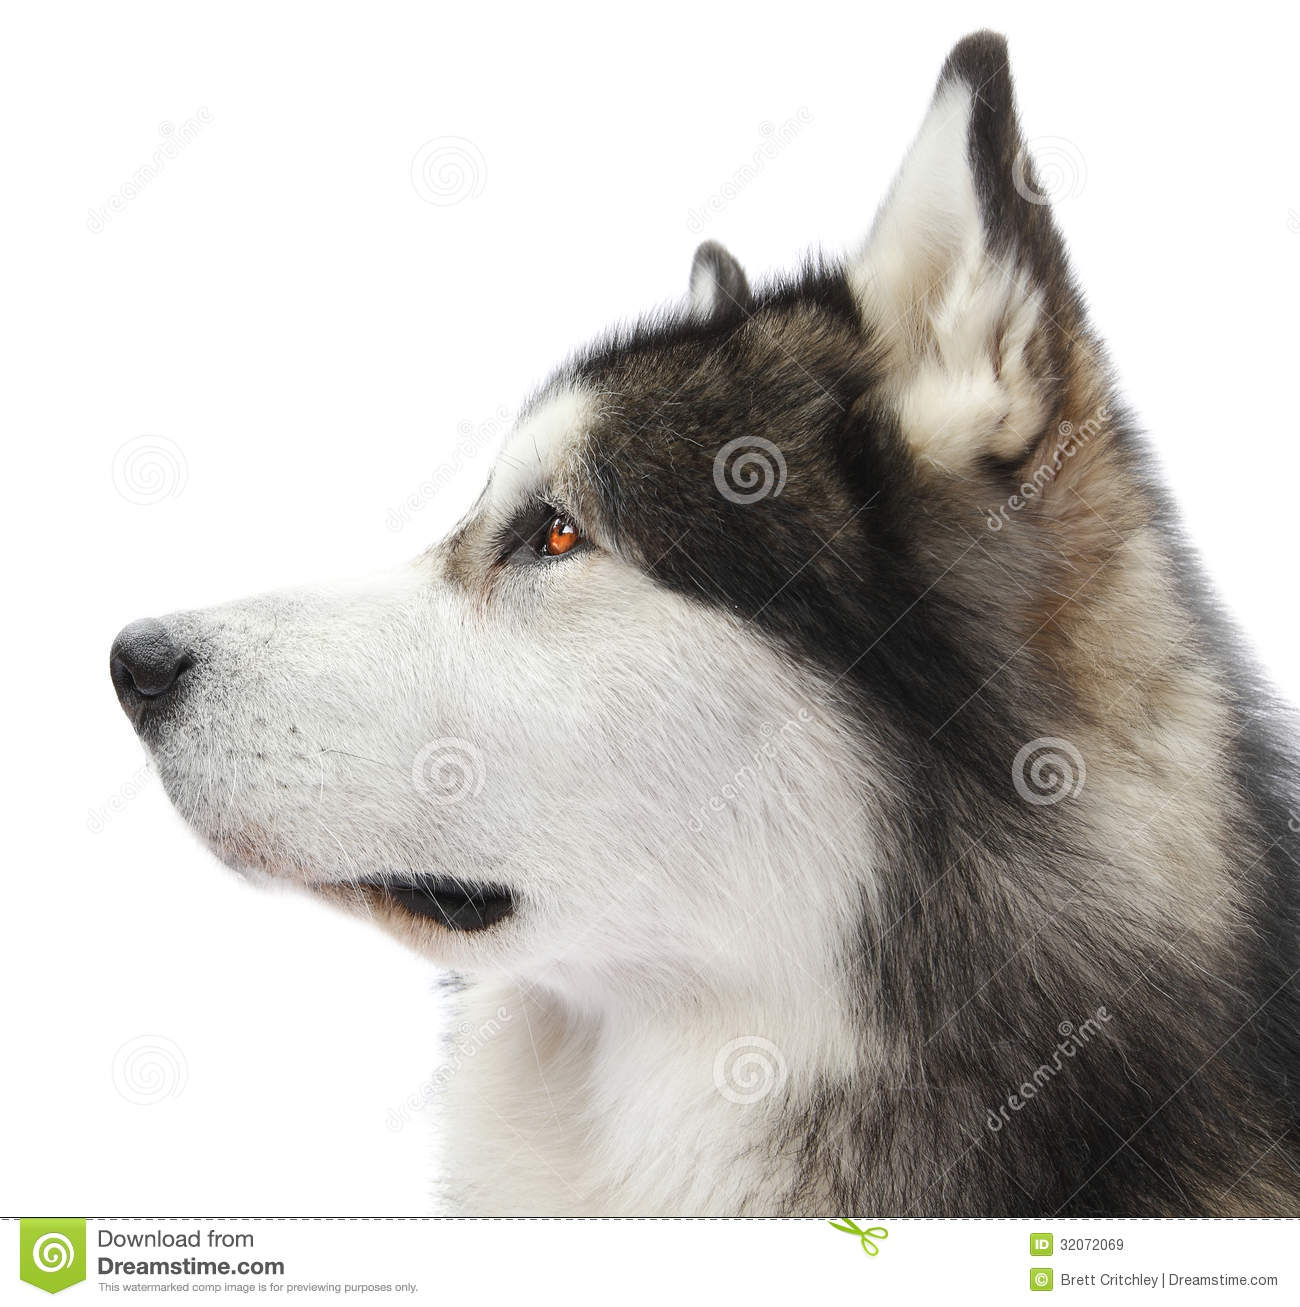 Bettwäsche Dog Side My Side Malamute Dog Portrait Royalty Free Stock Images Image